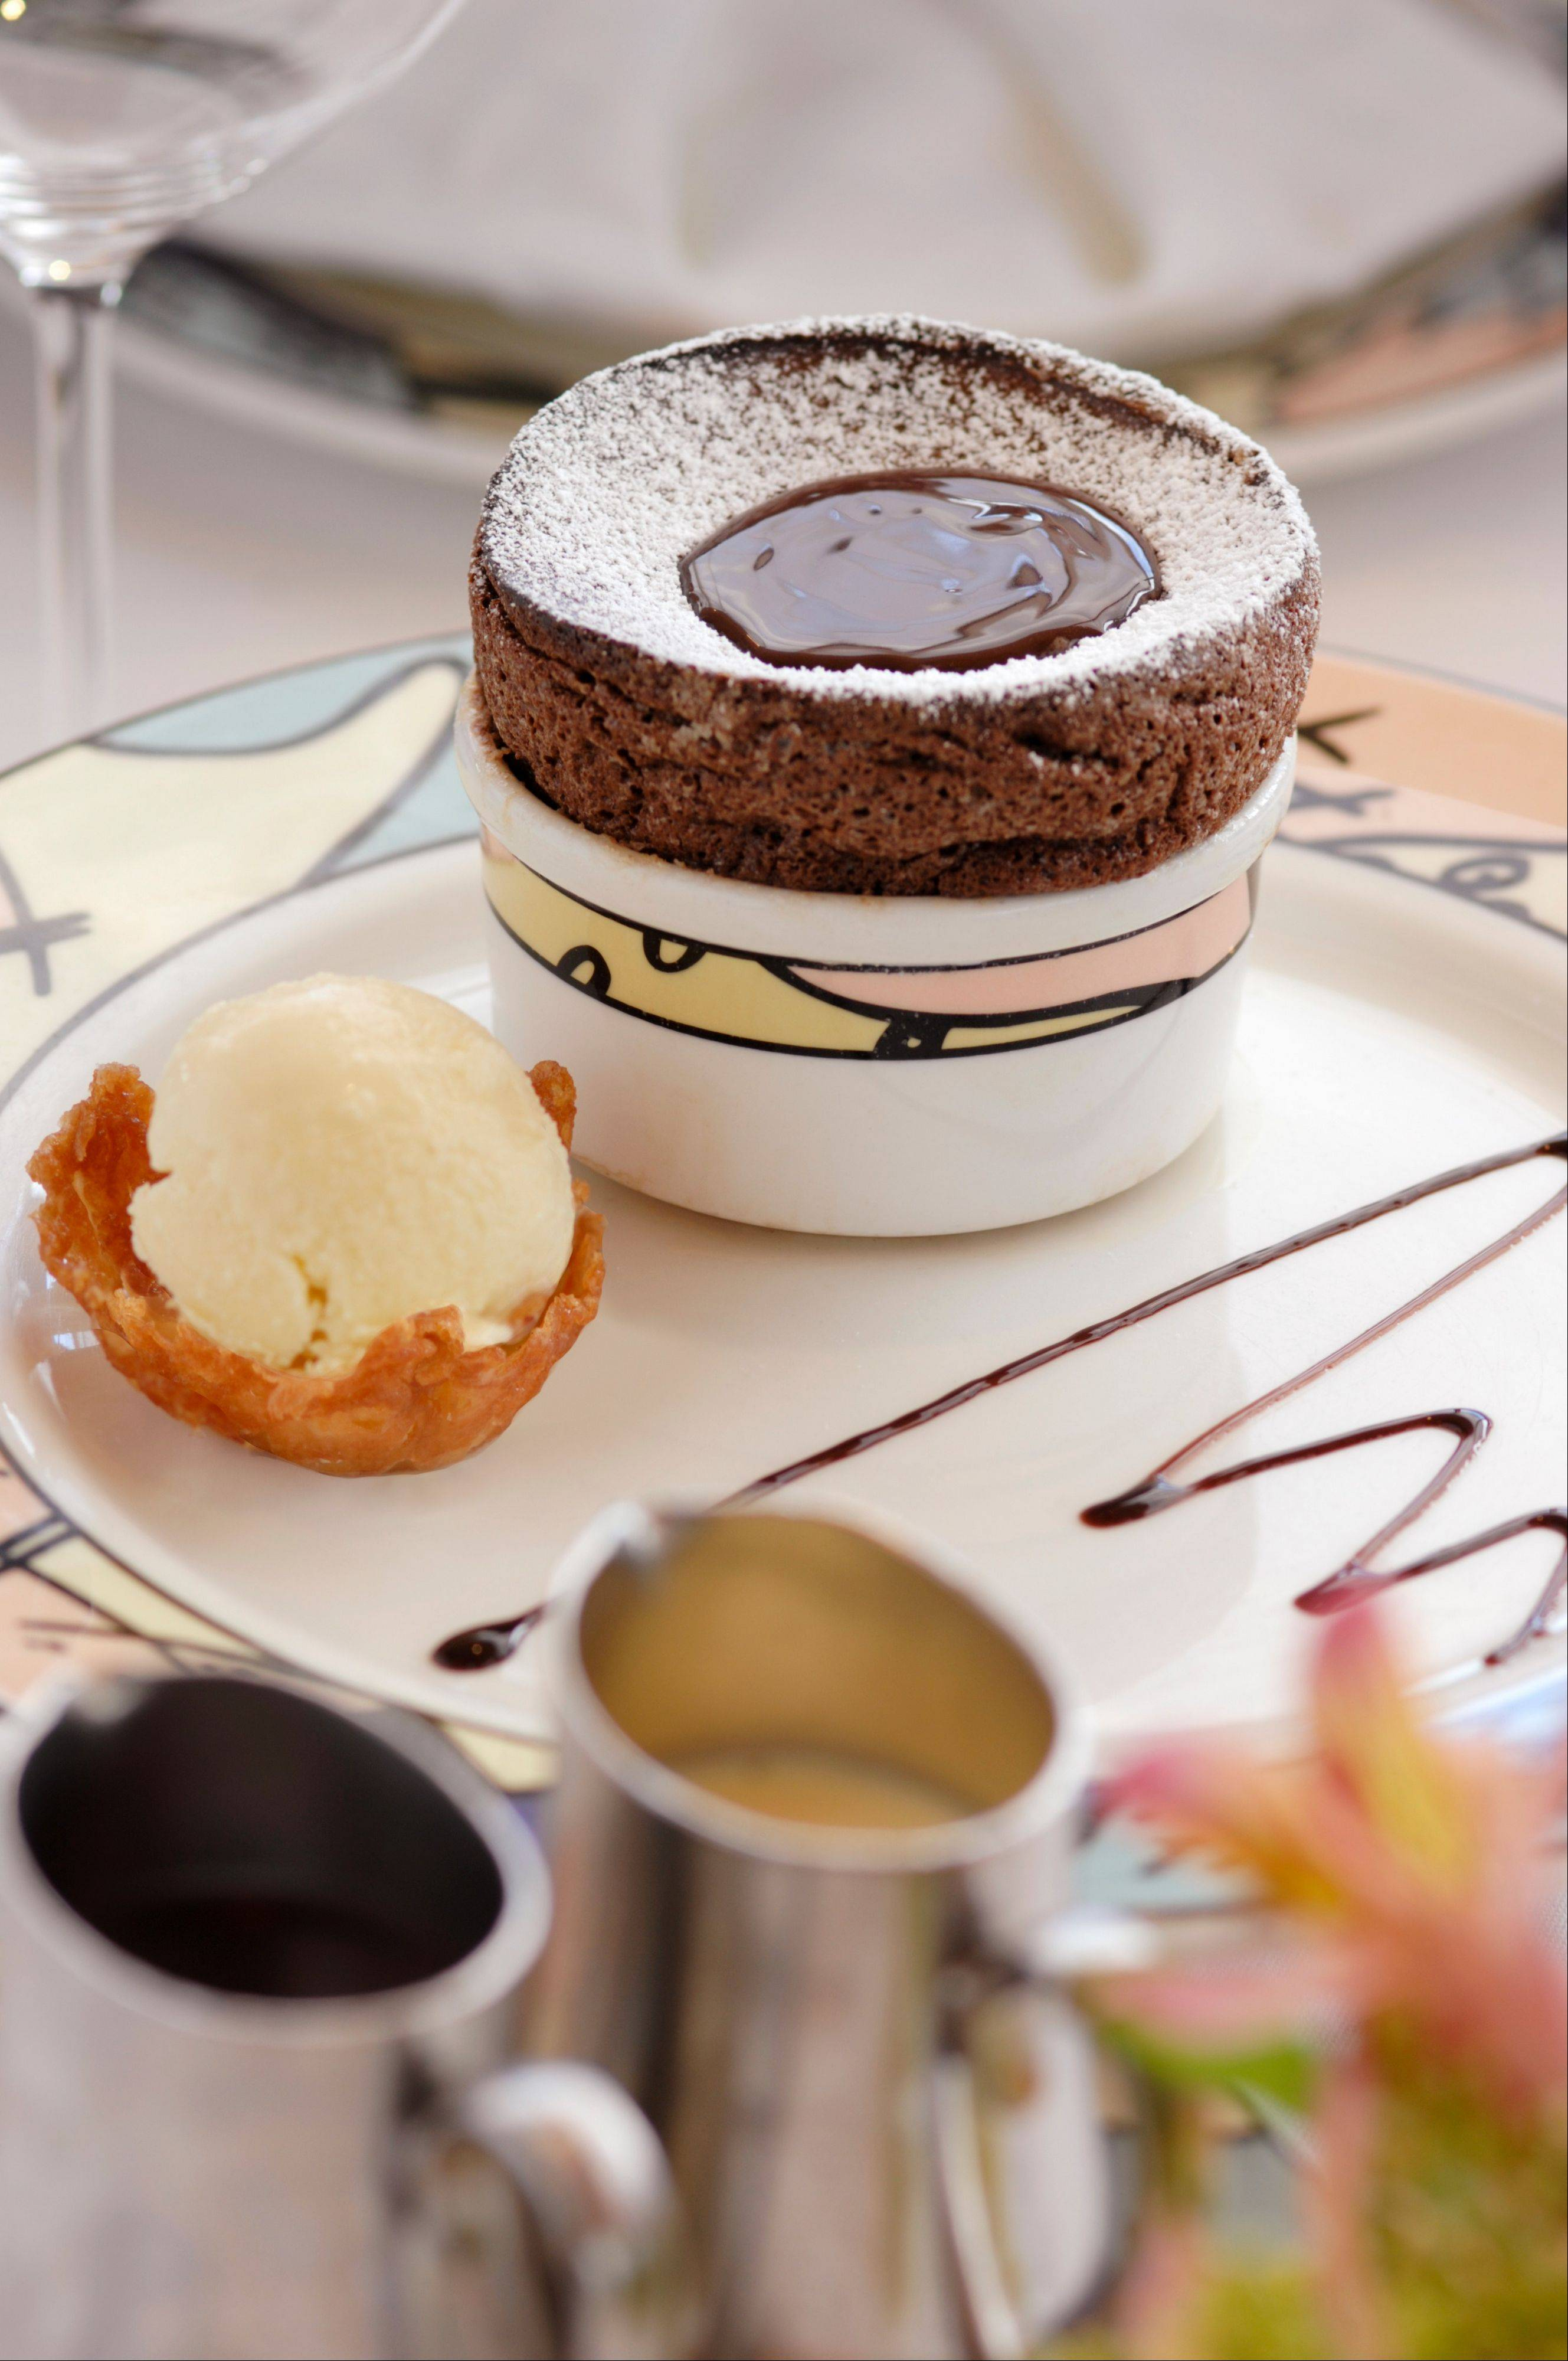 Chocolate souffle is a signature dessert at Palo restaurant aboard Disney Magic and it's not that difficult to recreate at home.